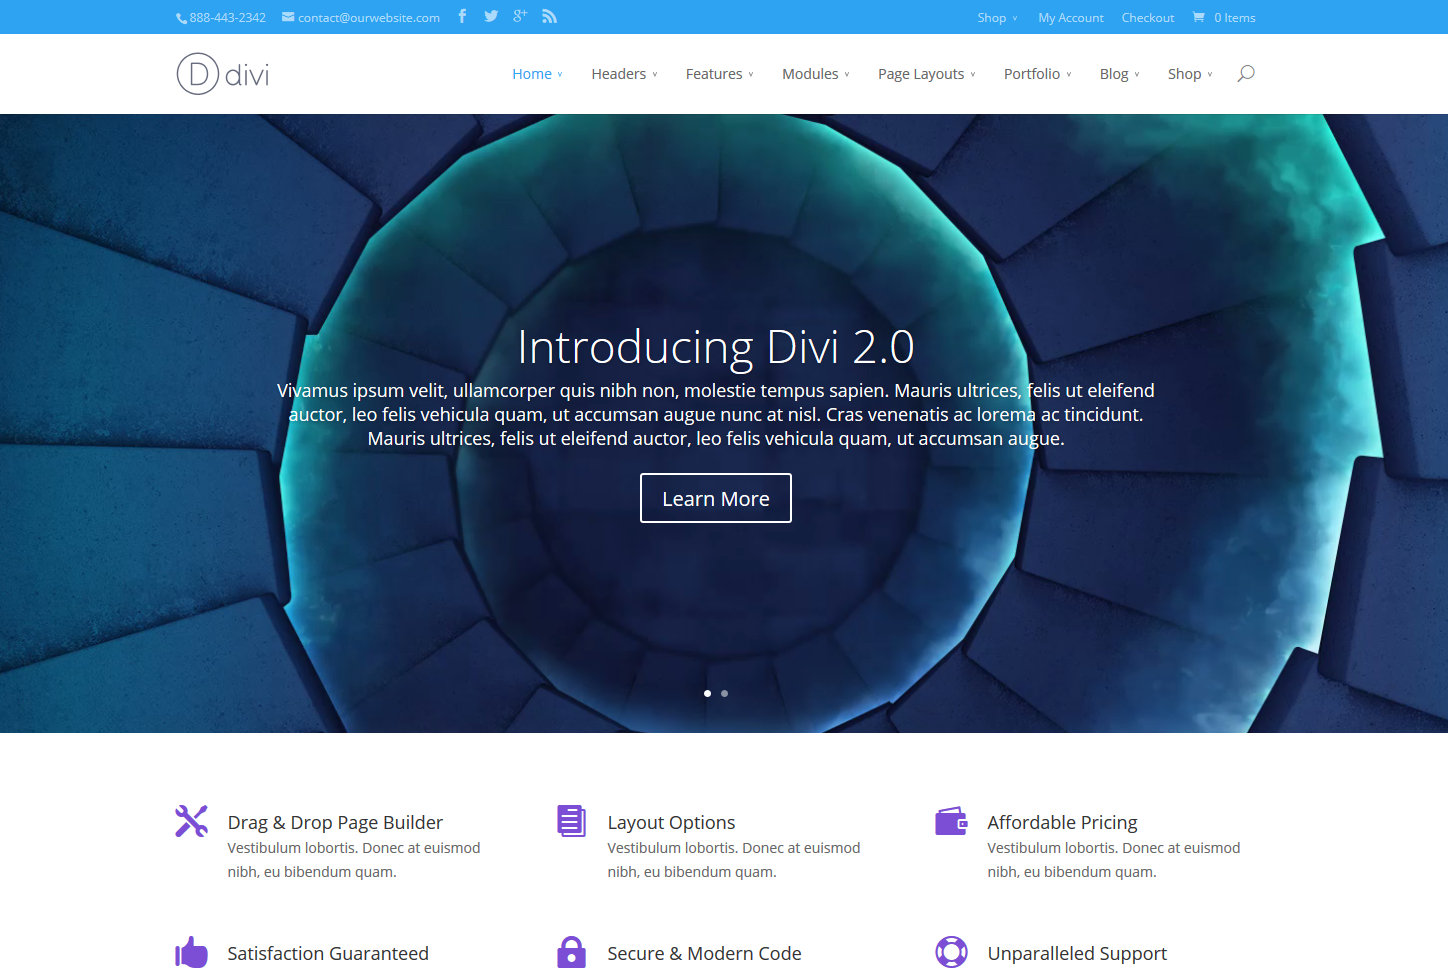 A screenshot of the Divi theme demo page